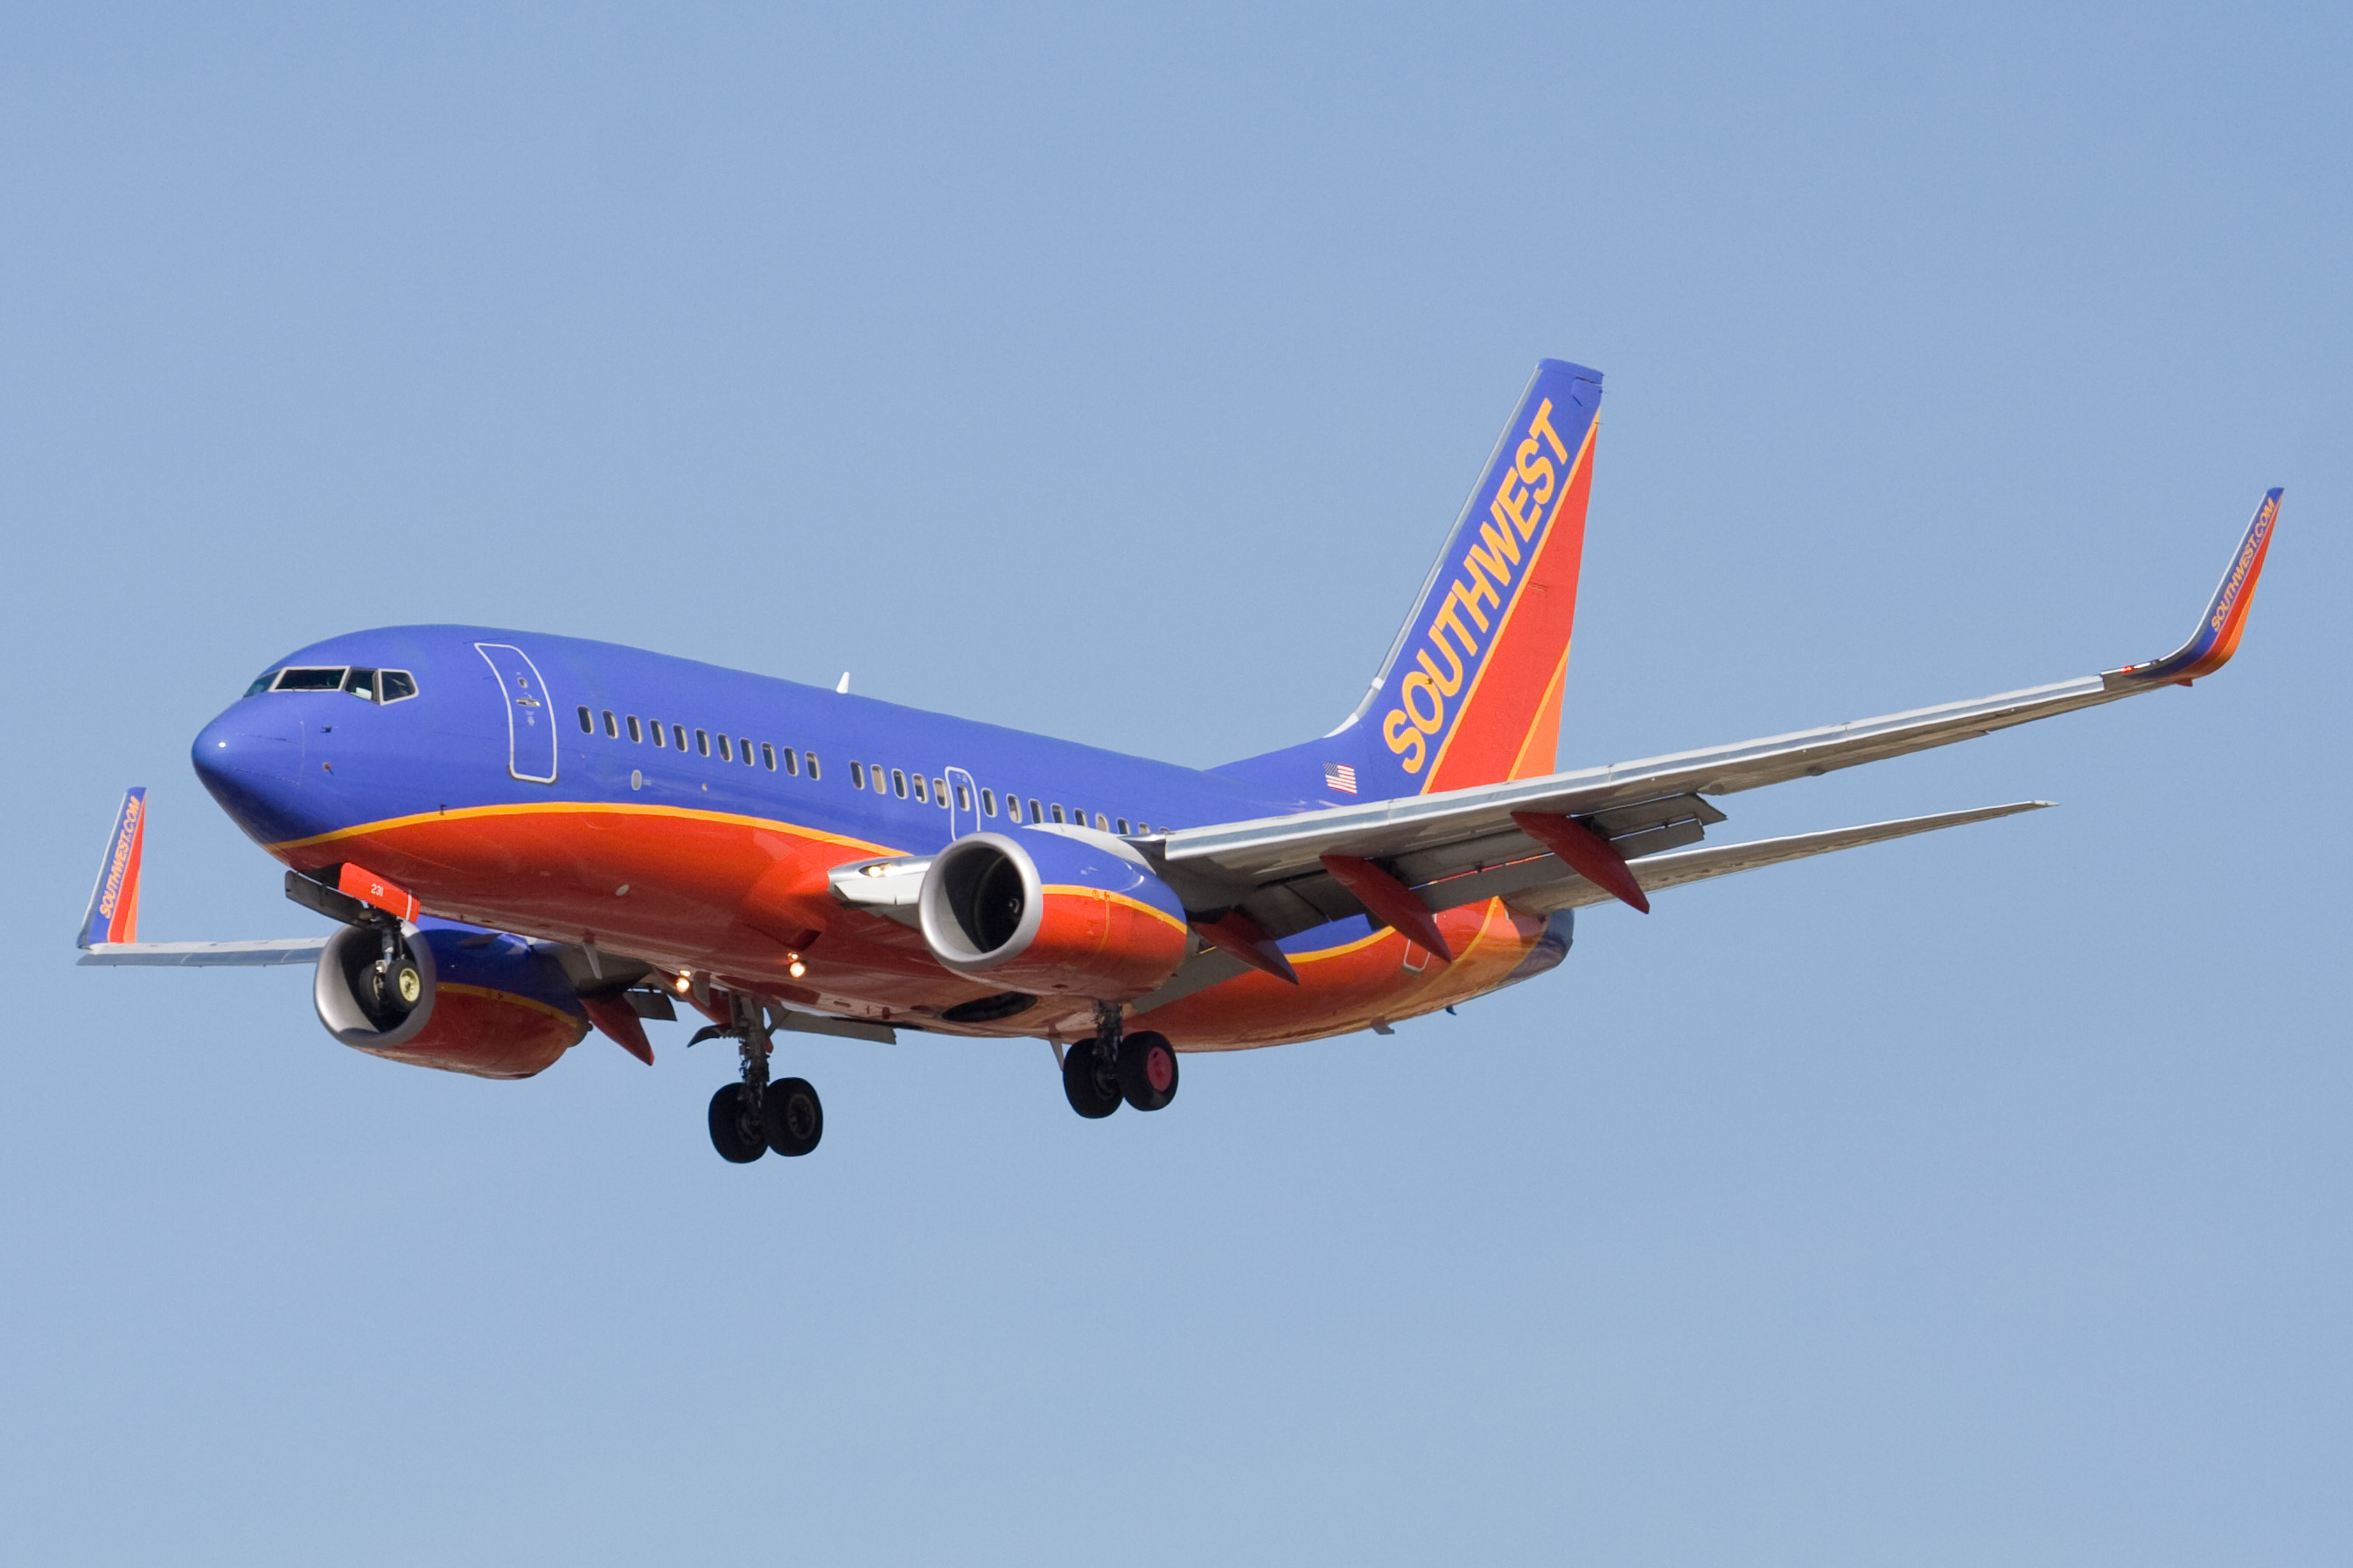 SOUTHWEST AIRLINES PILOTS: LEADERS IN THE AVIATION INDUSTRY